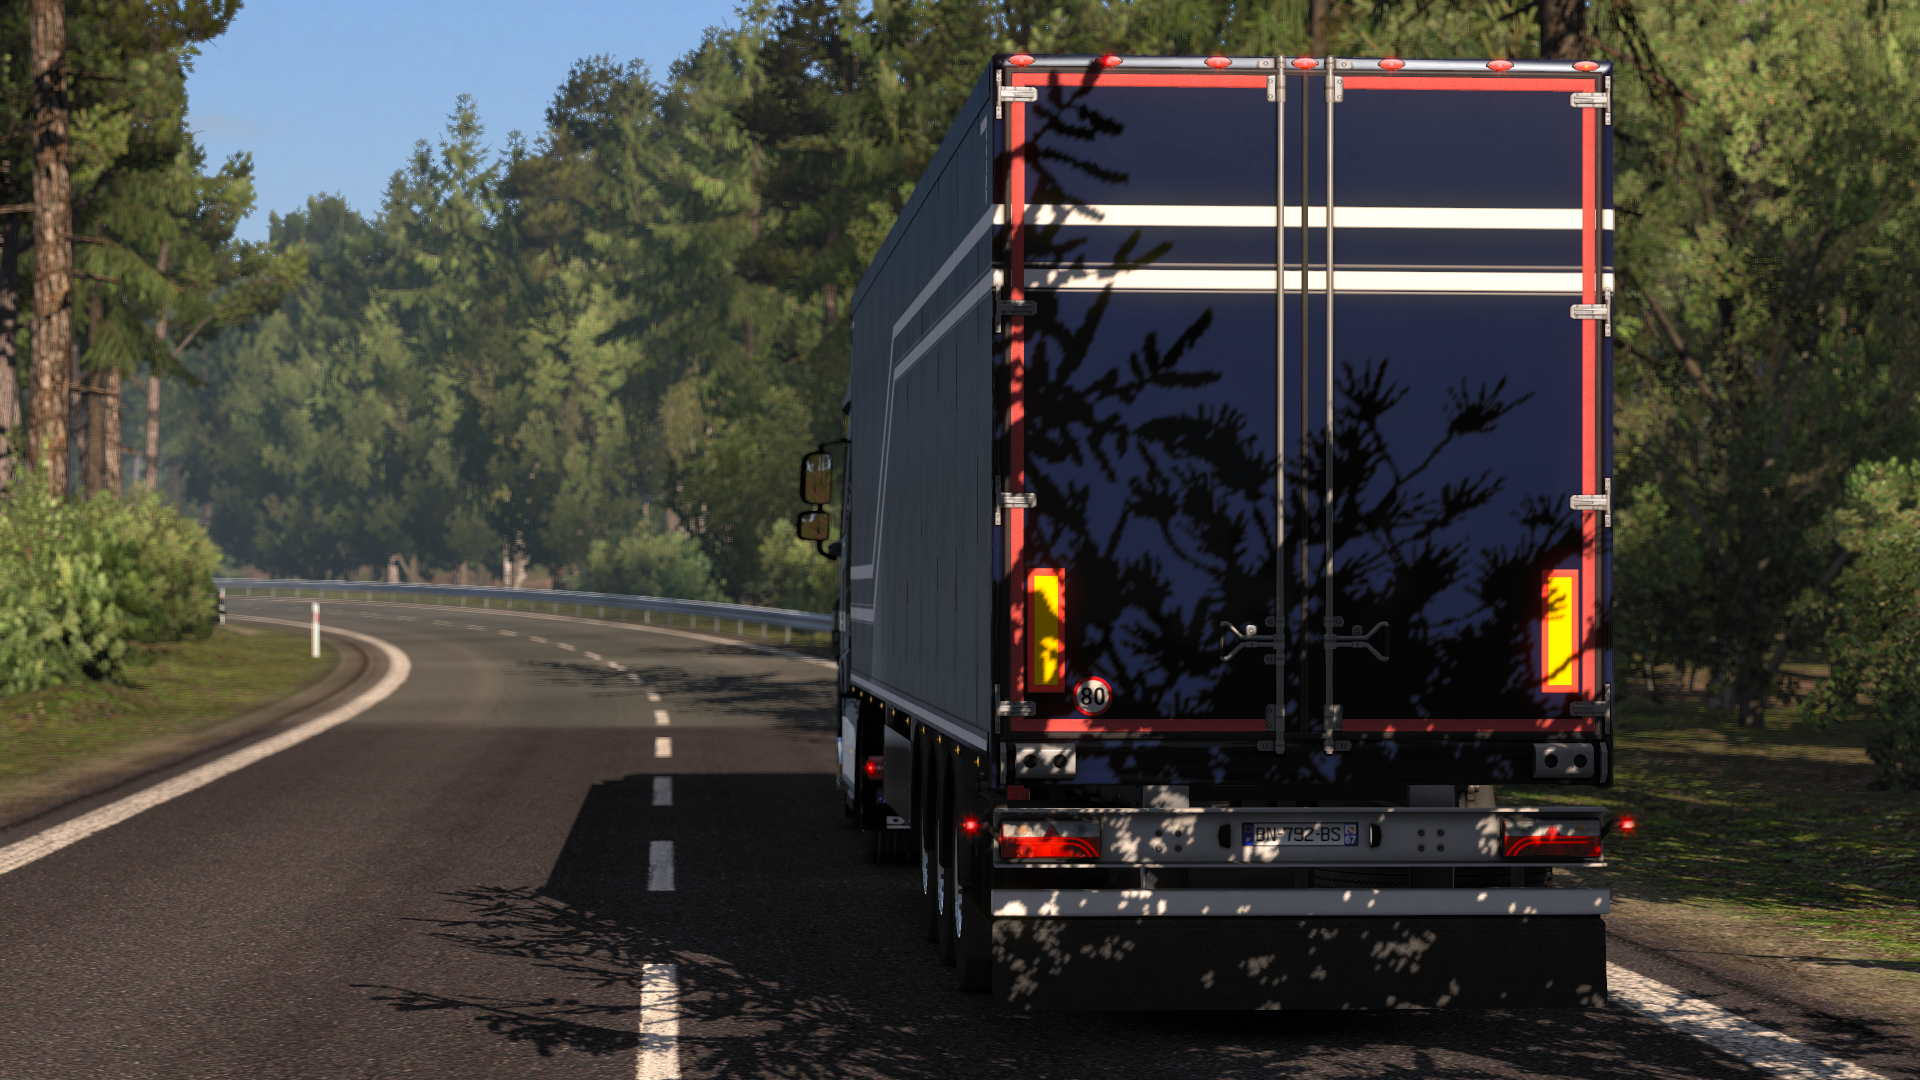 ets2_20180814_182403_00.png